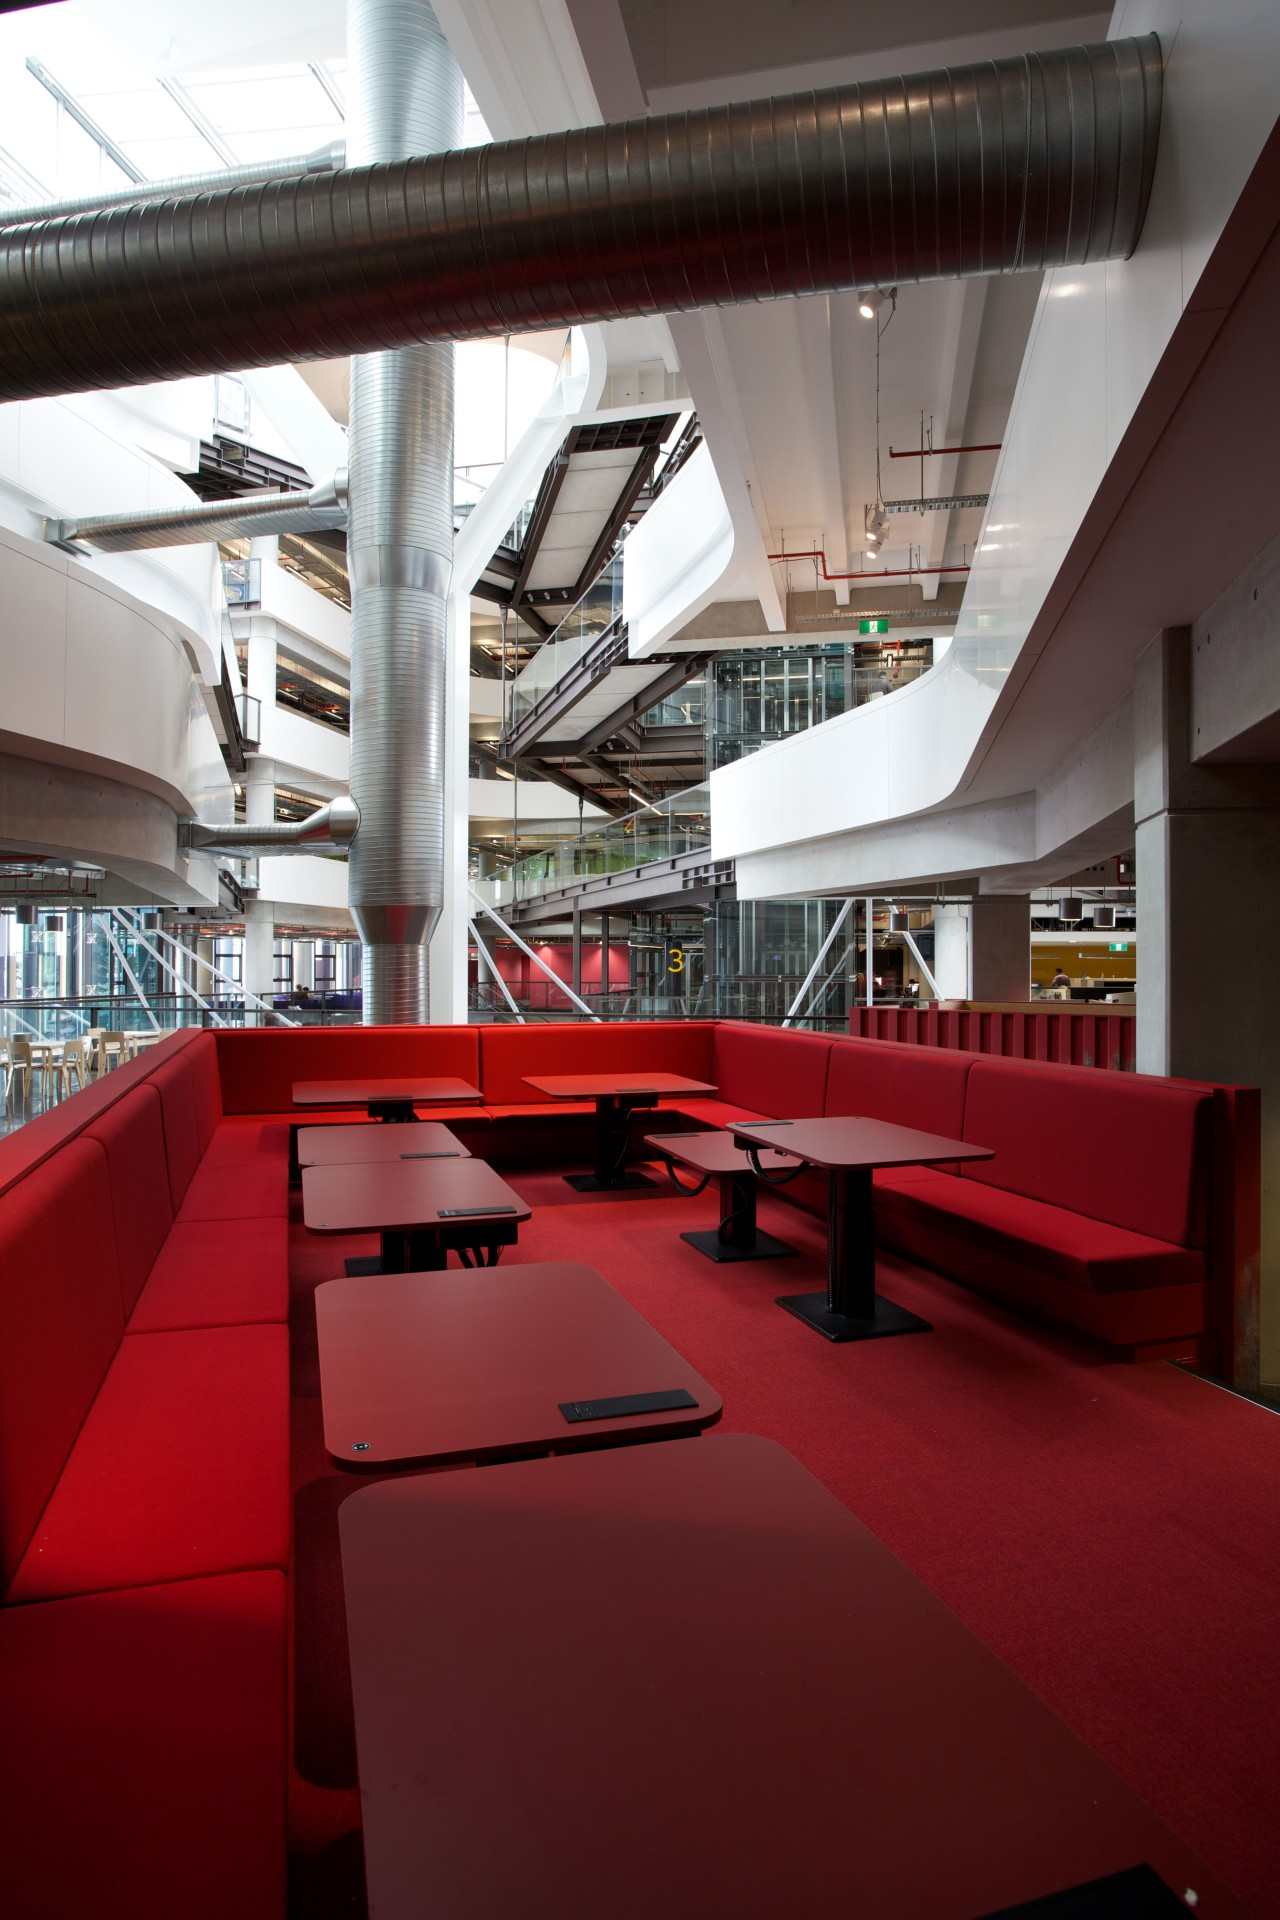 ASB North Wharf joinery by Sage Manufacturing architecture, daylighting, furniture, interior design, structure, table, red